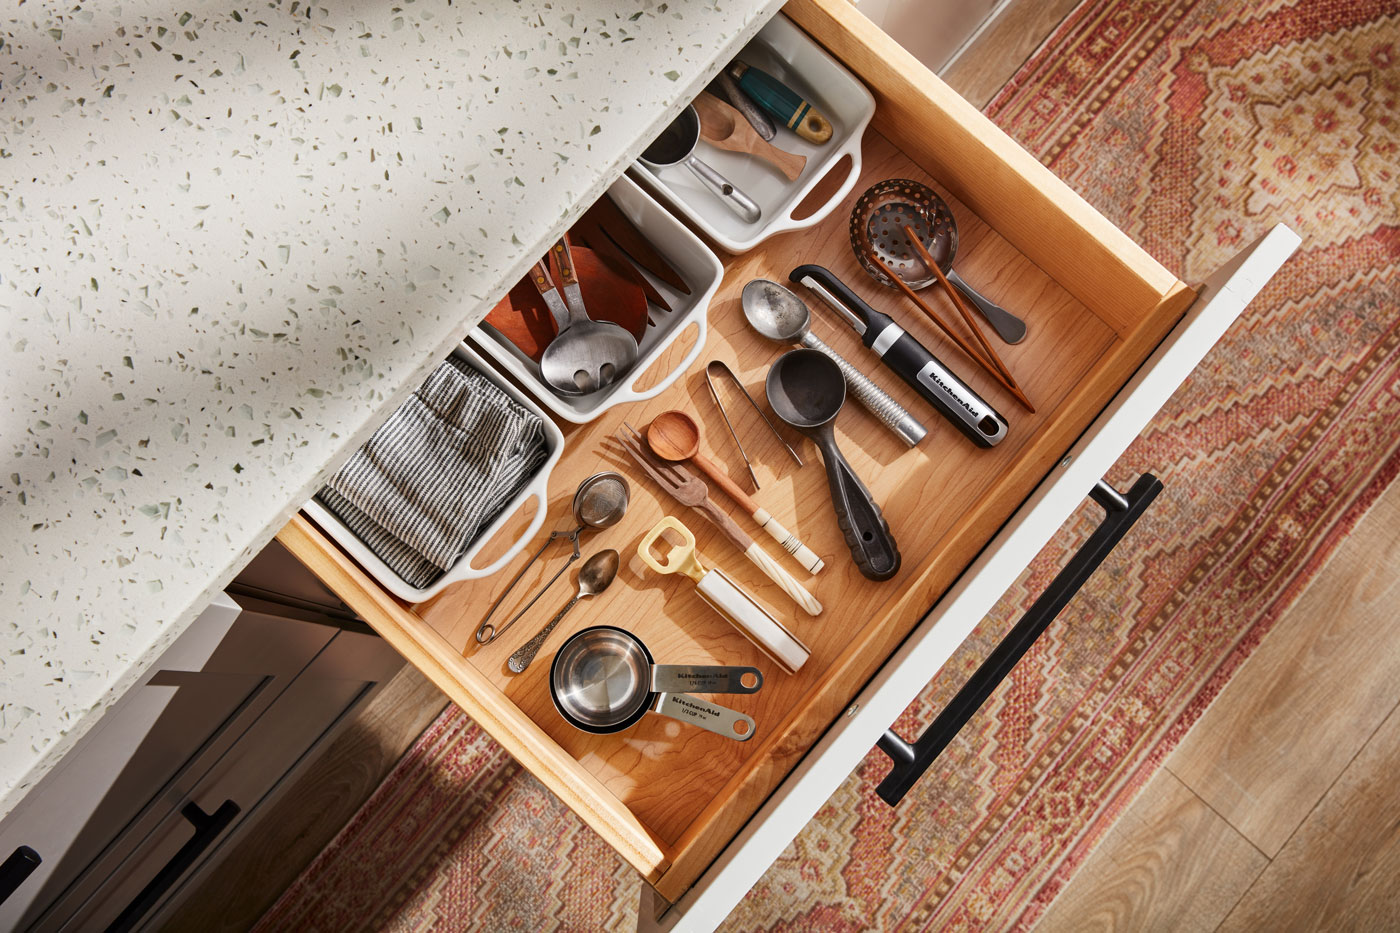 An open kitchen drawer filled with utensils neatly organized.